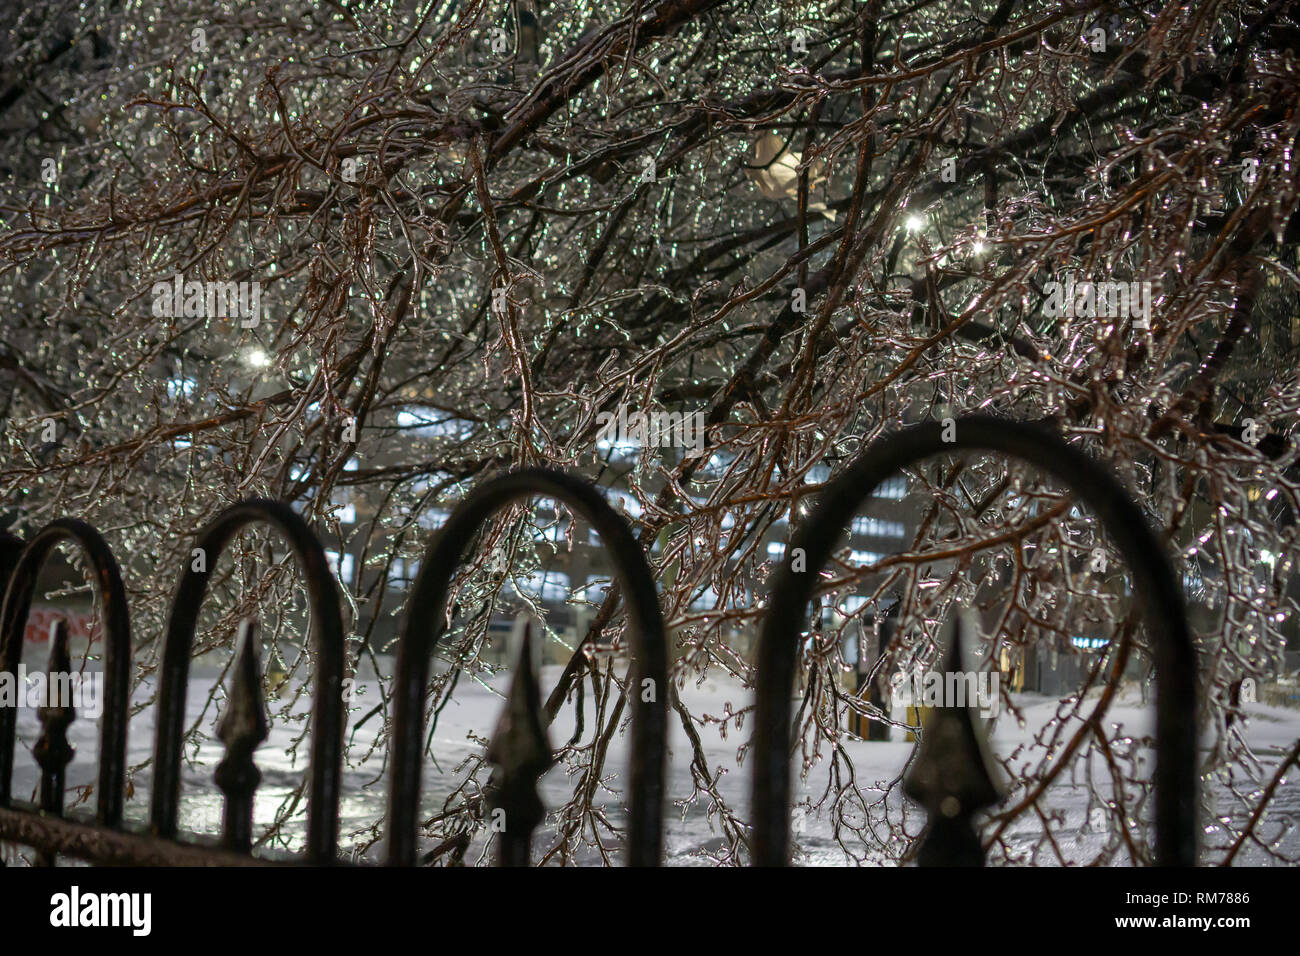 """Even though the Toronto ice storm always causes a lot of real damage in the city there is undeniable beauty it brings with its literal """"silver lining"""" Stock Photo"""